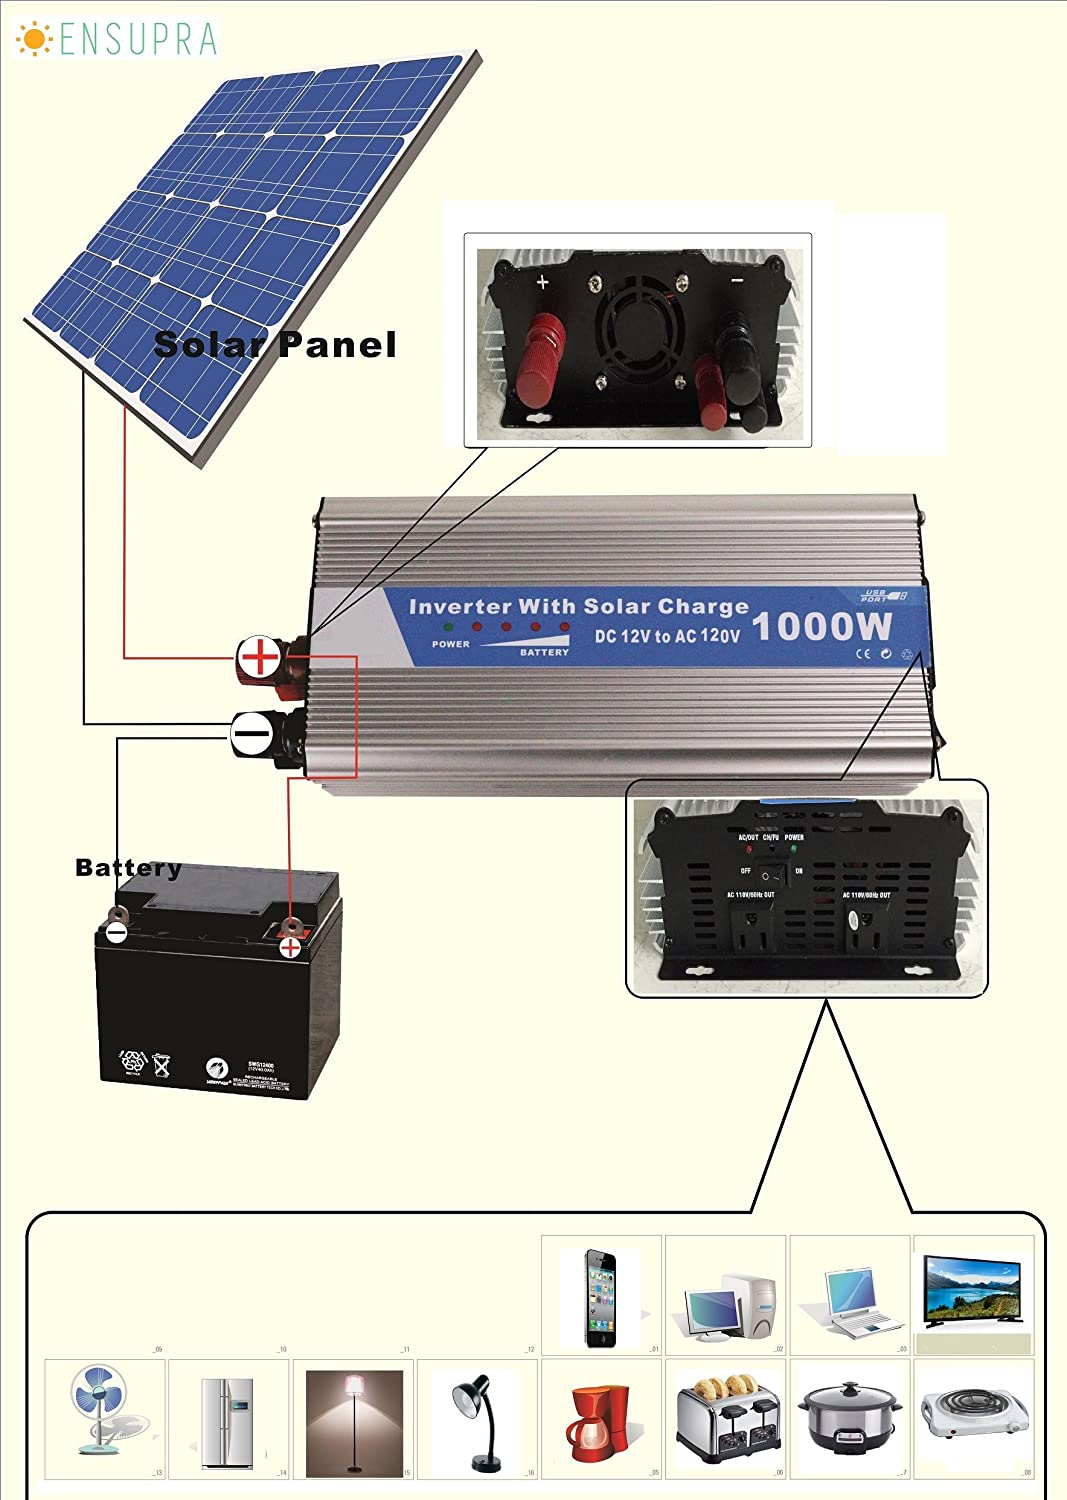 Solar Power Inverter With Built In Controllerpwm Simple 12v Aa Battery Charger Circuit Controllerpwm1000 Watts12vdc To 110vac Modified Sinewaveplug Play Solarsimply Connect